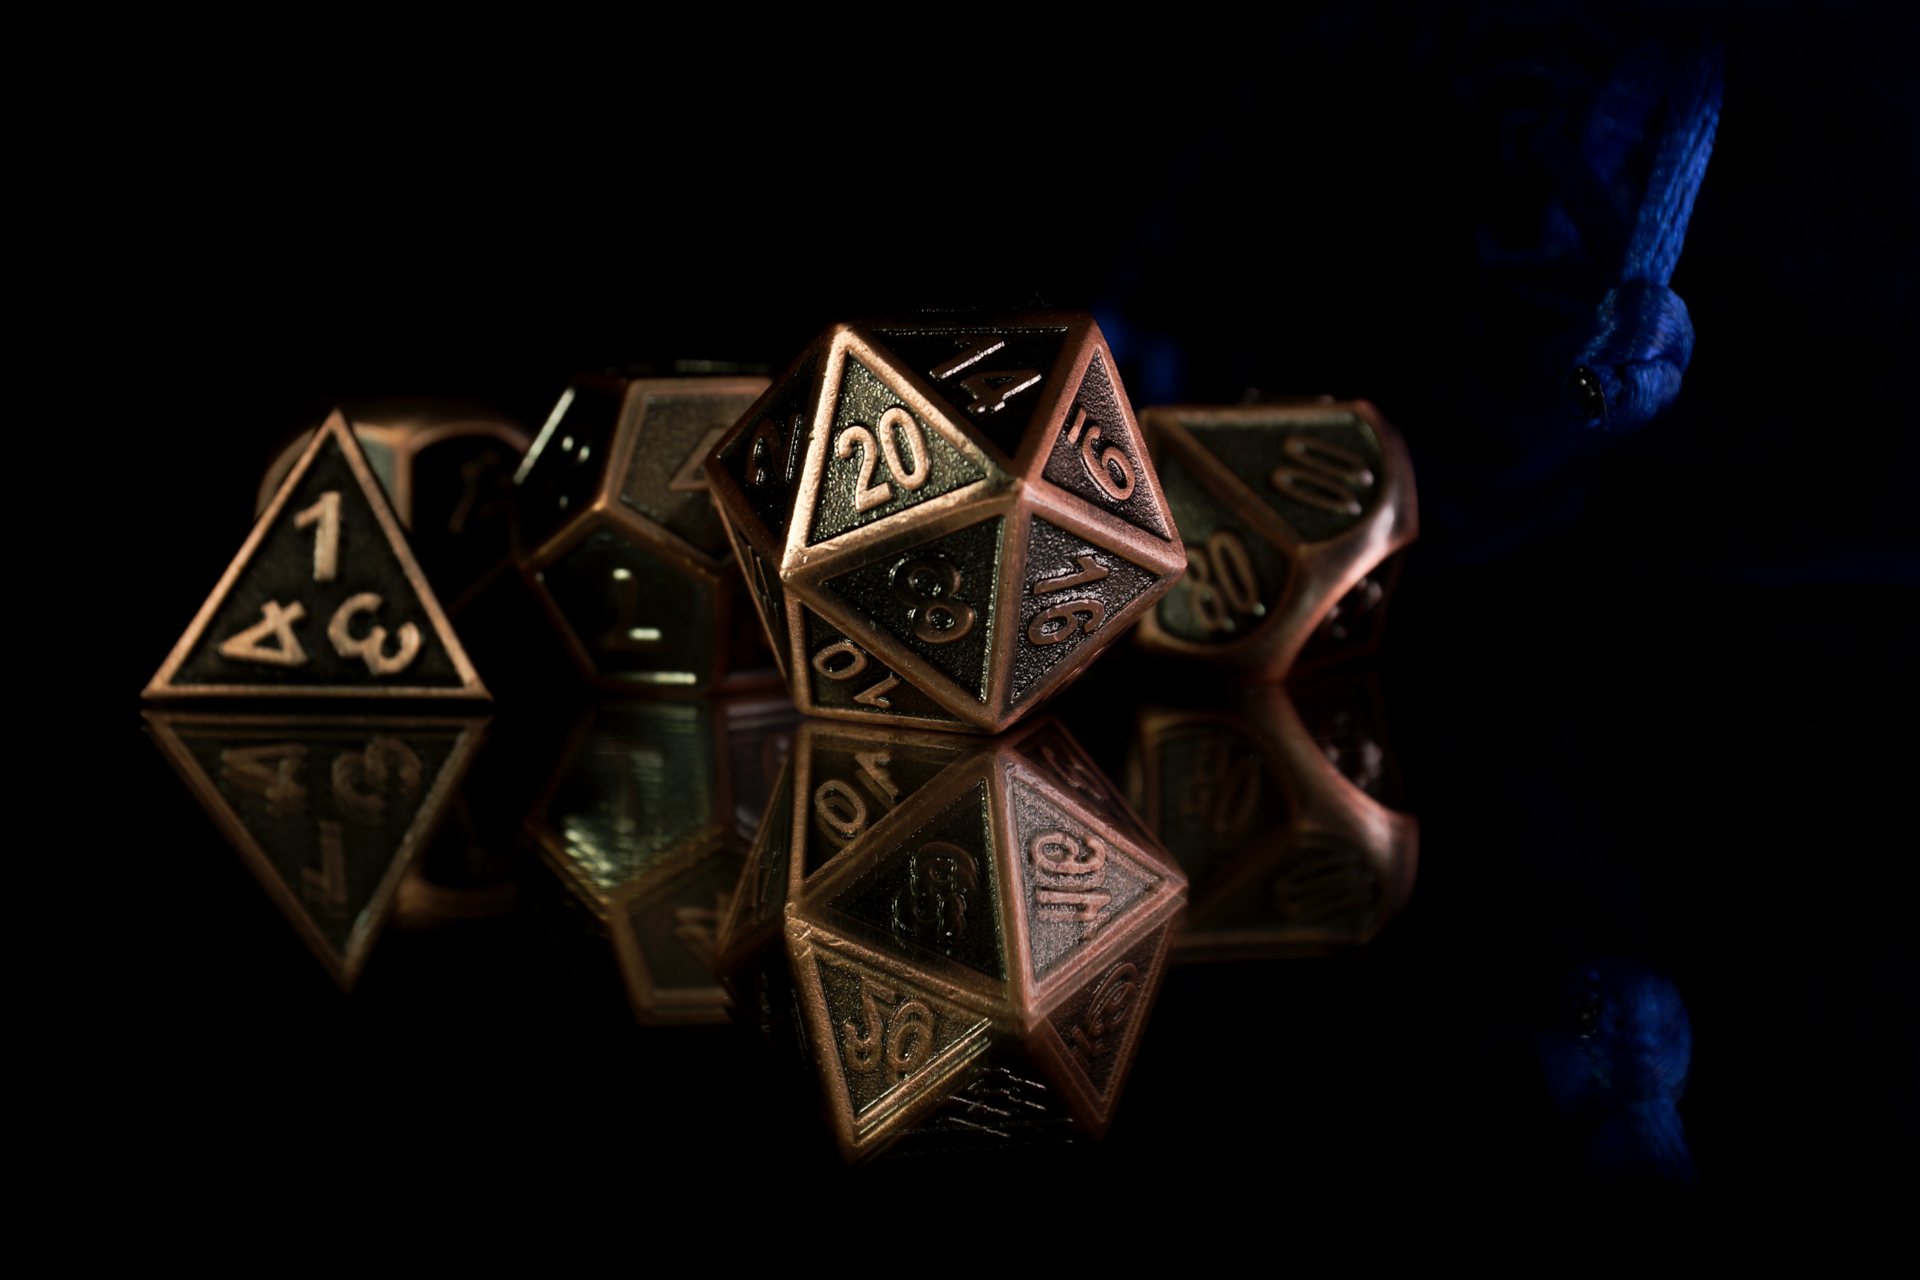 A set of polyhedral dice used for role playing games such as Dungeons & Dragons.